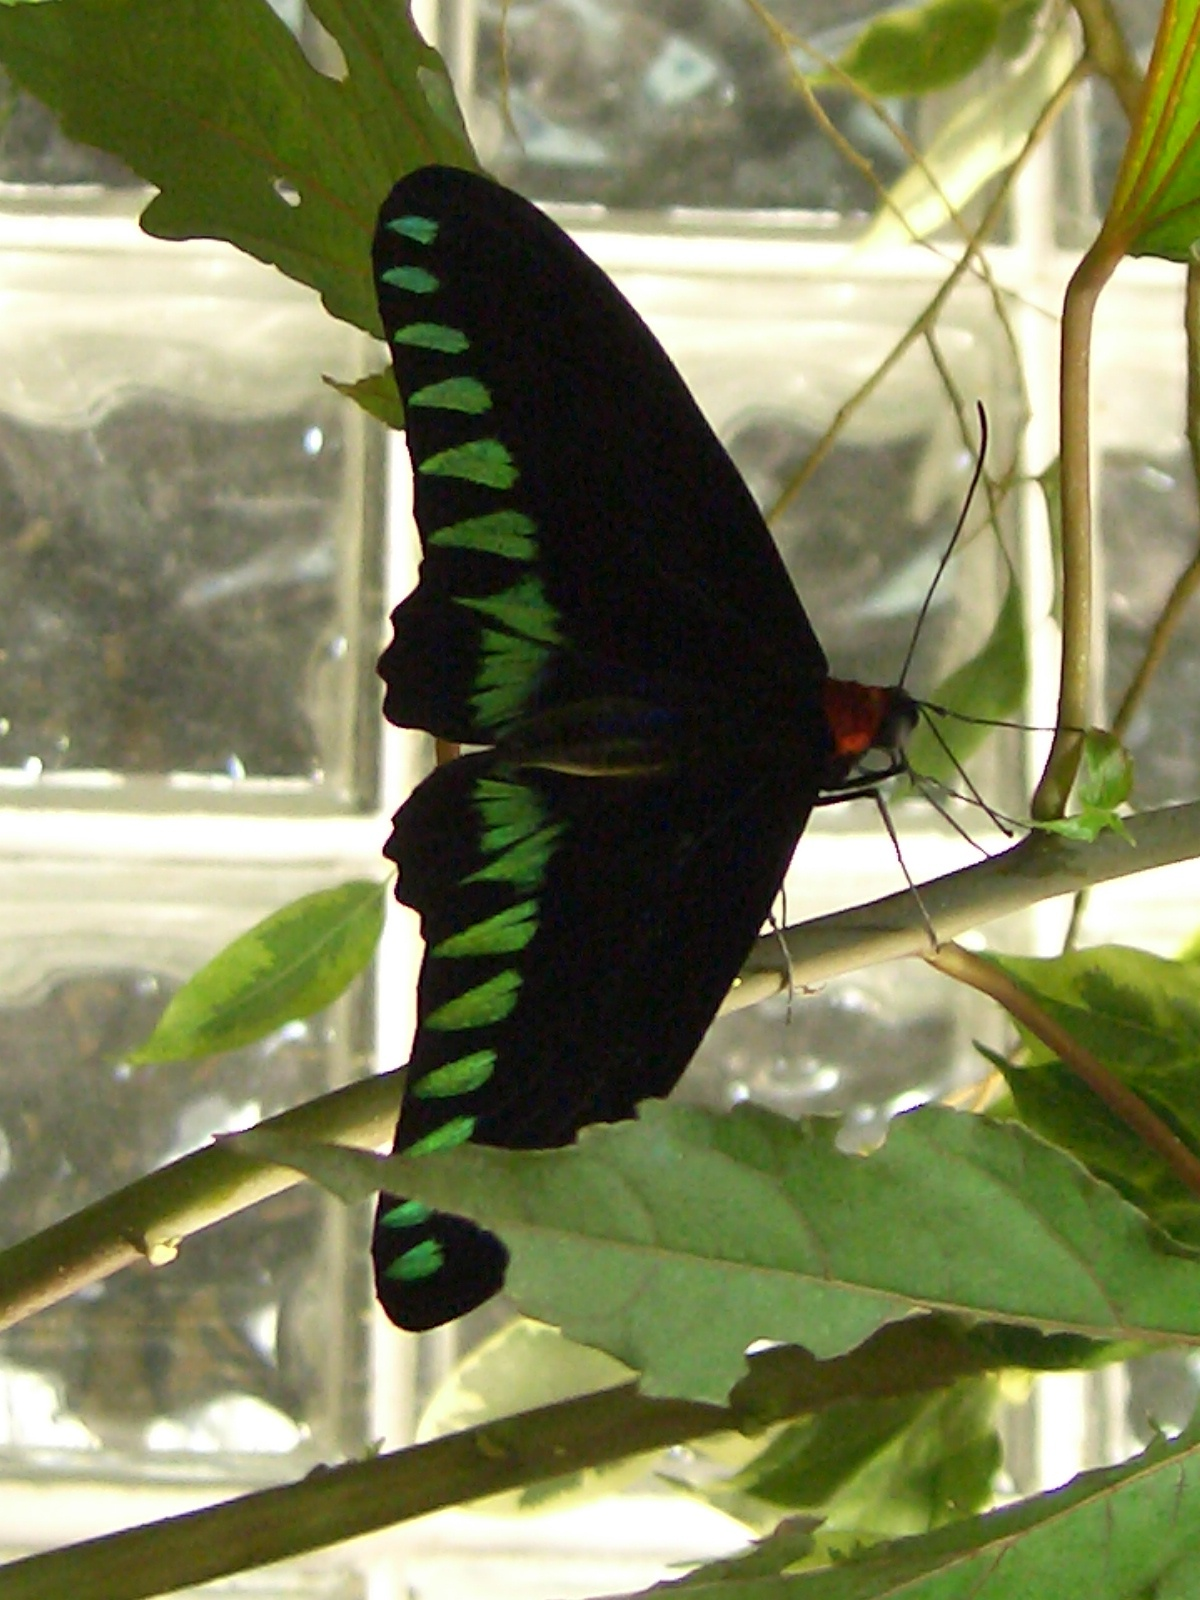 Butterfly genus species - Queen Alexandra's Birdwing